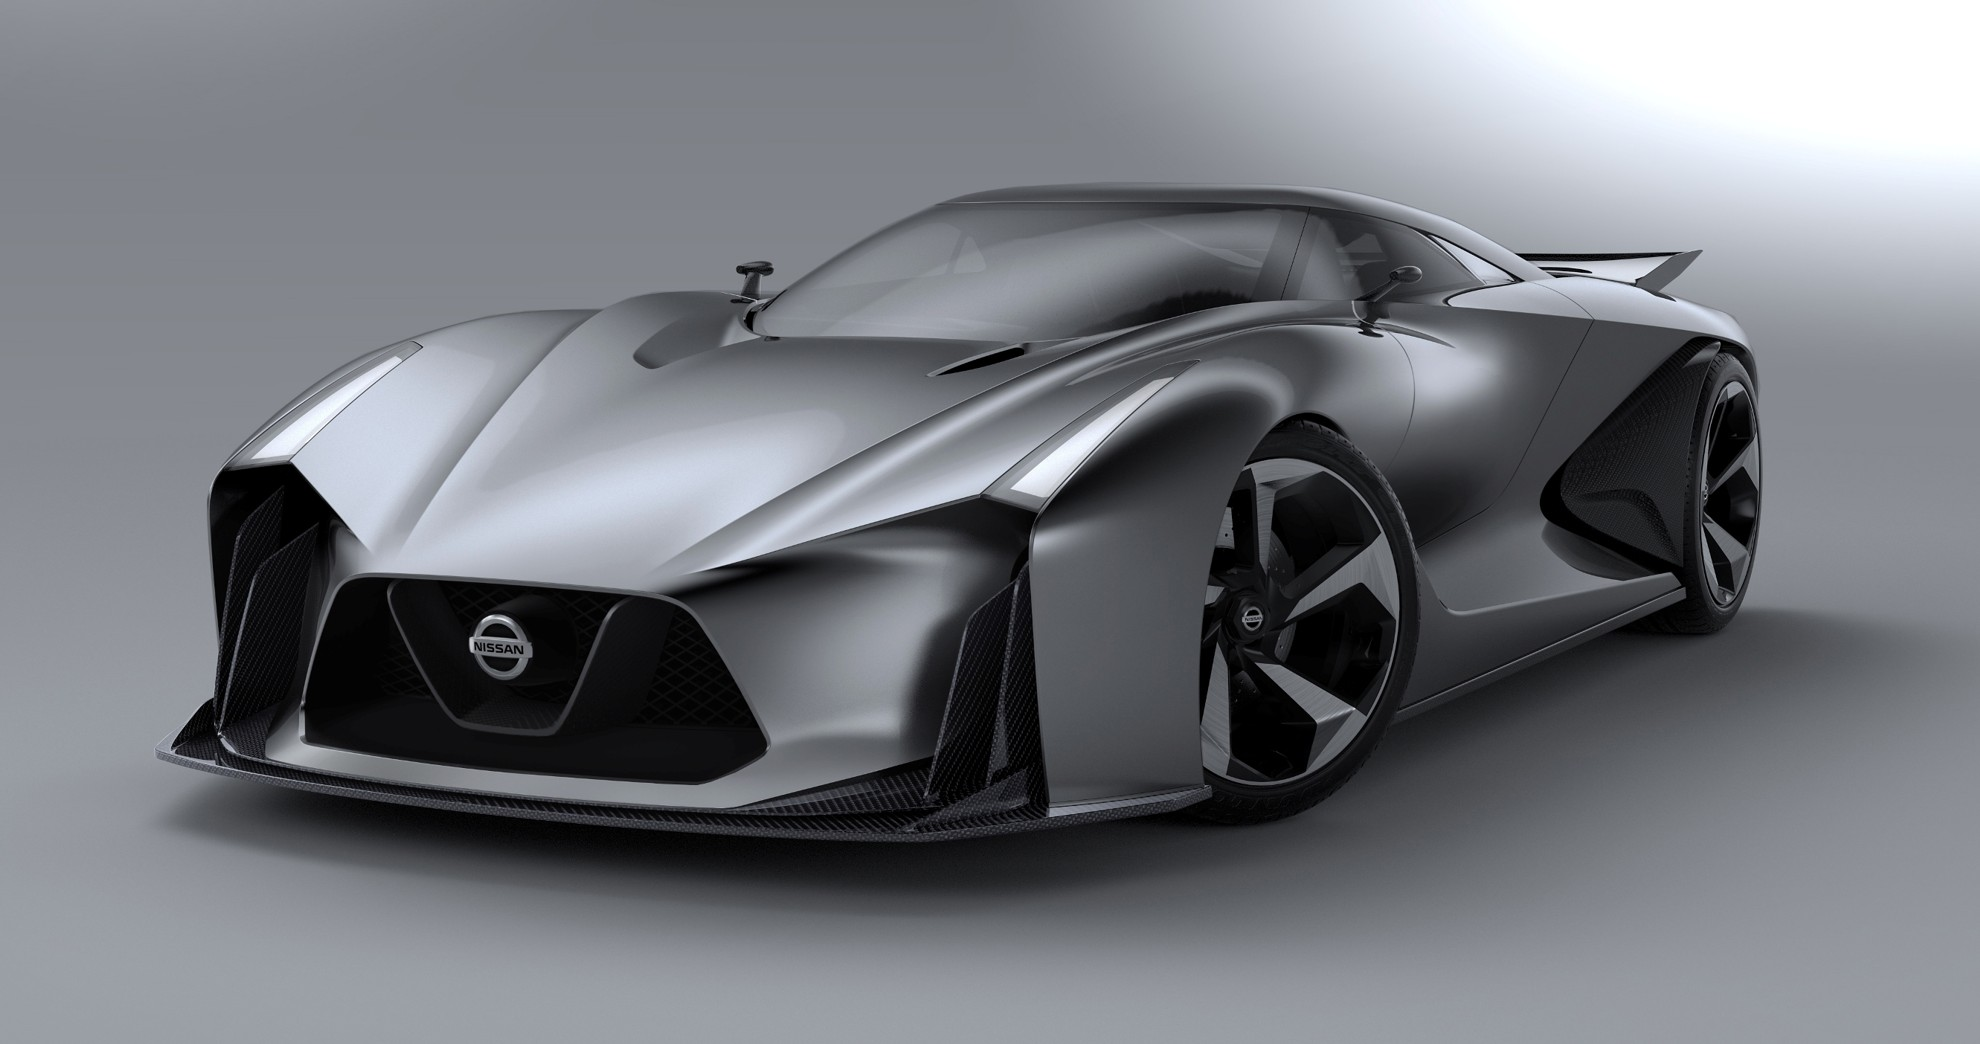 Nissan Concept 2020 Set To Excite Goodwood Festival Crowds